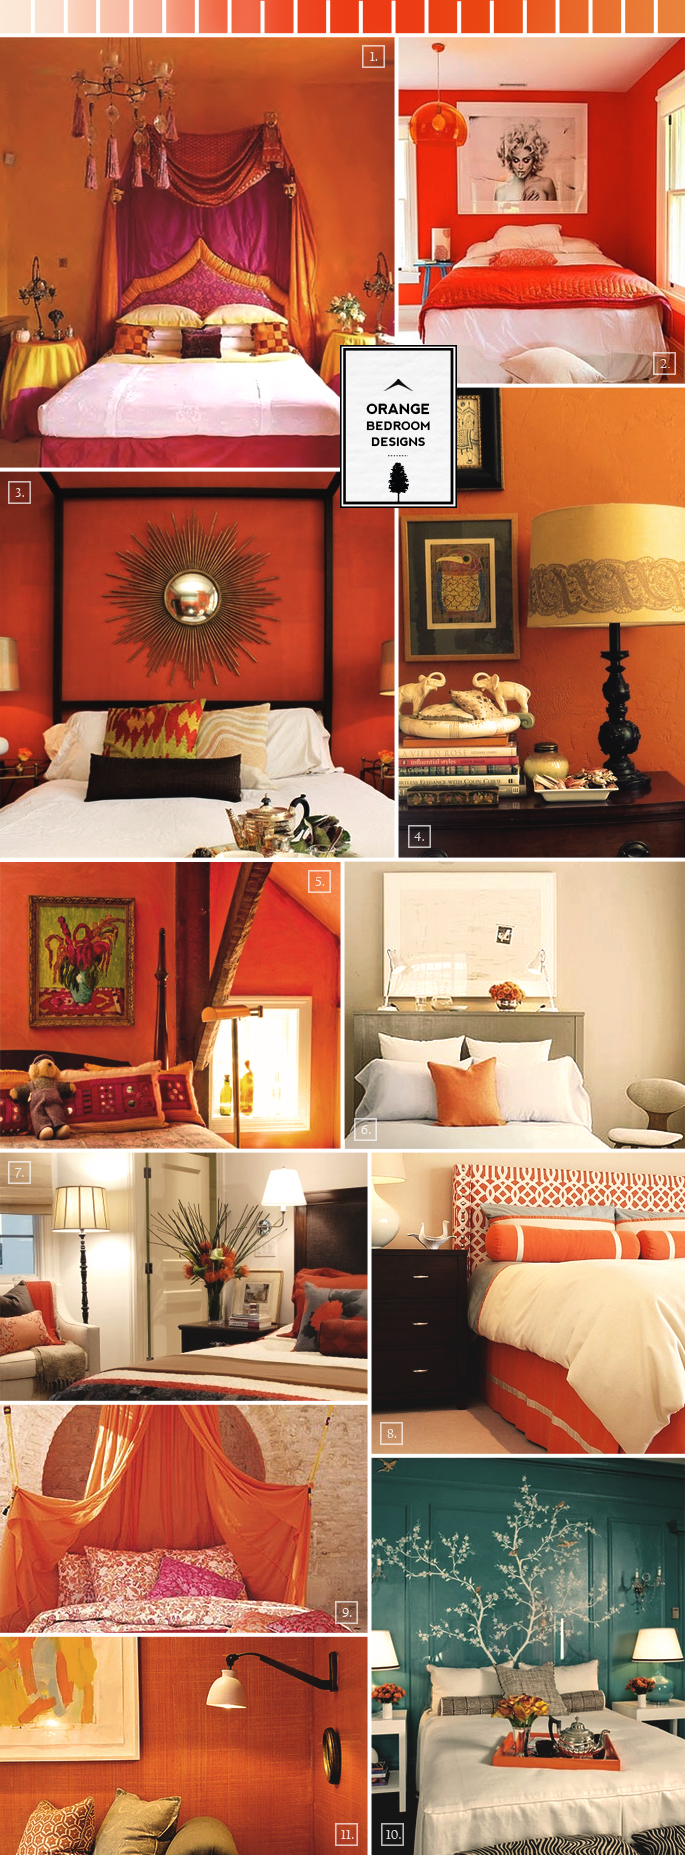 Design tips and pictures for designing a bedroom in orange home tree atlas - Orange bedroom decorating ideas ...